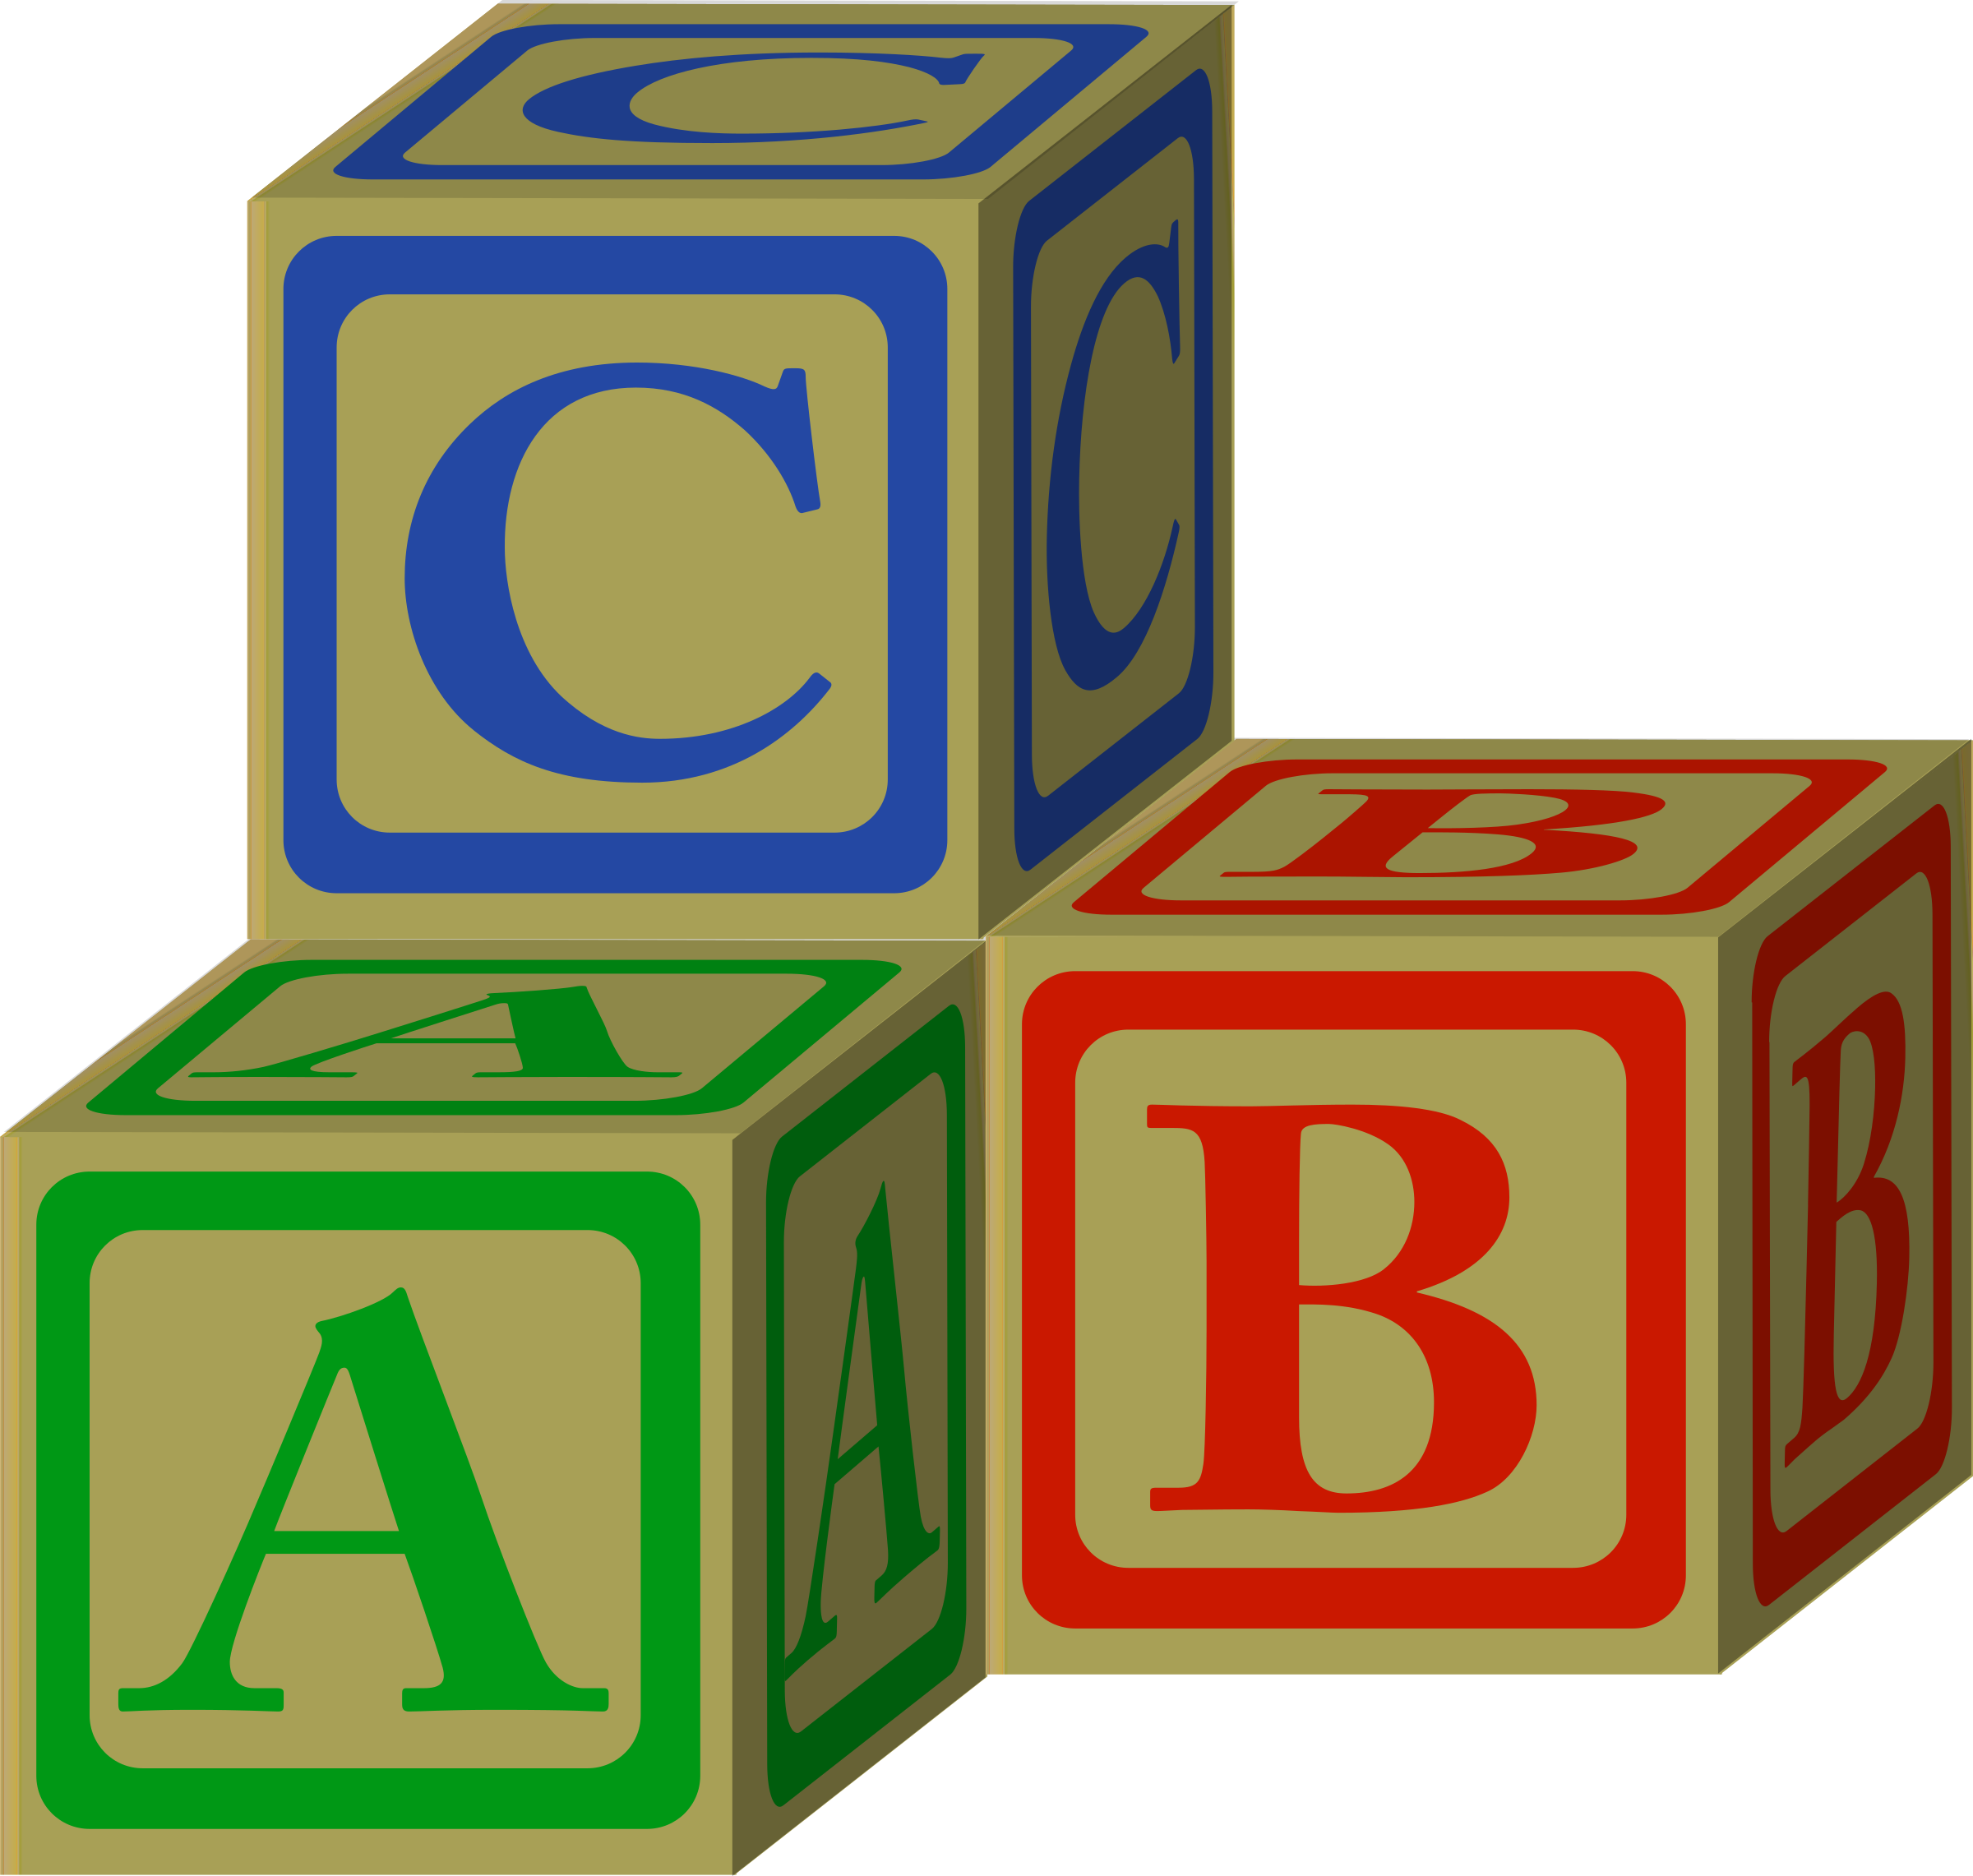 Alphabet blocks clip art clip art download Clipart - abc blocks petri lummema 01 clip art download